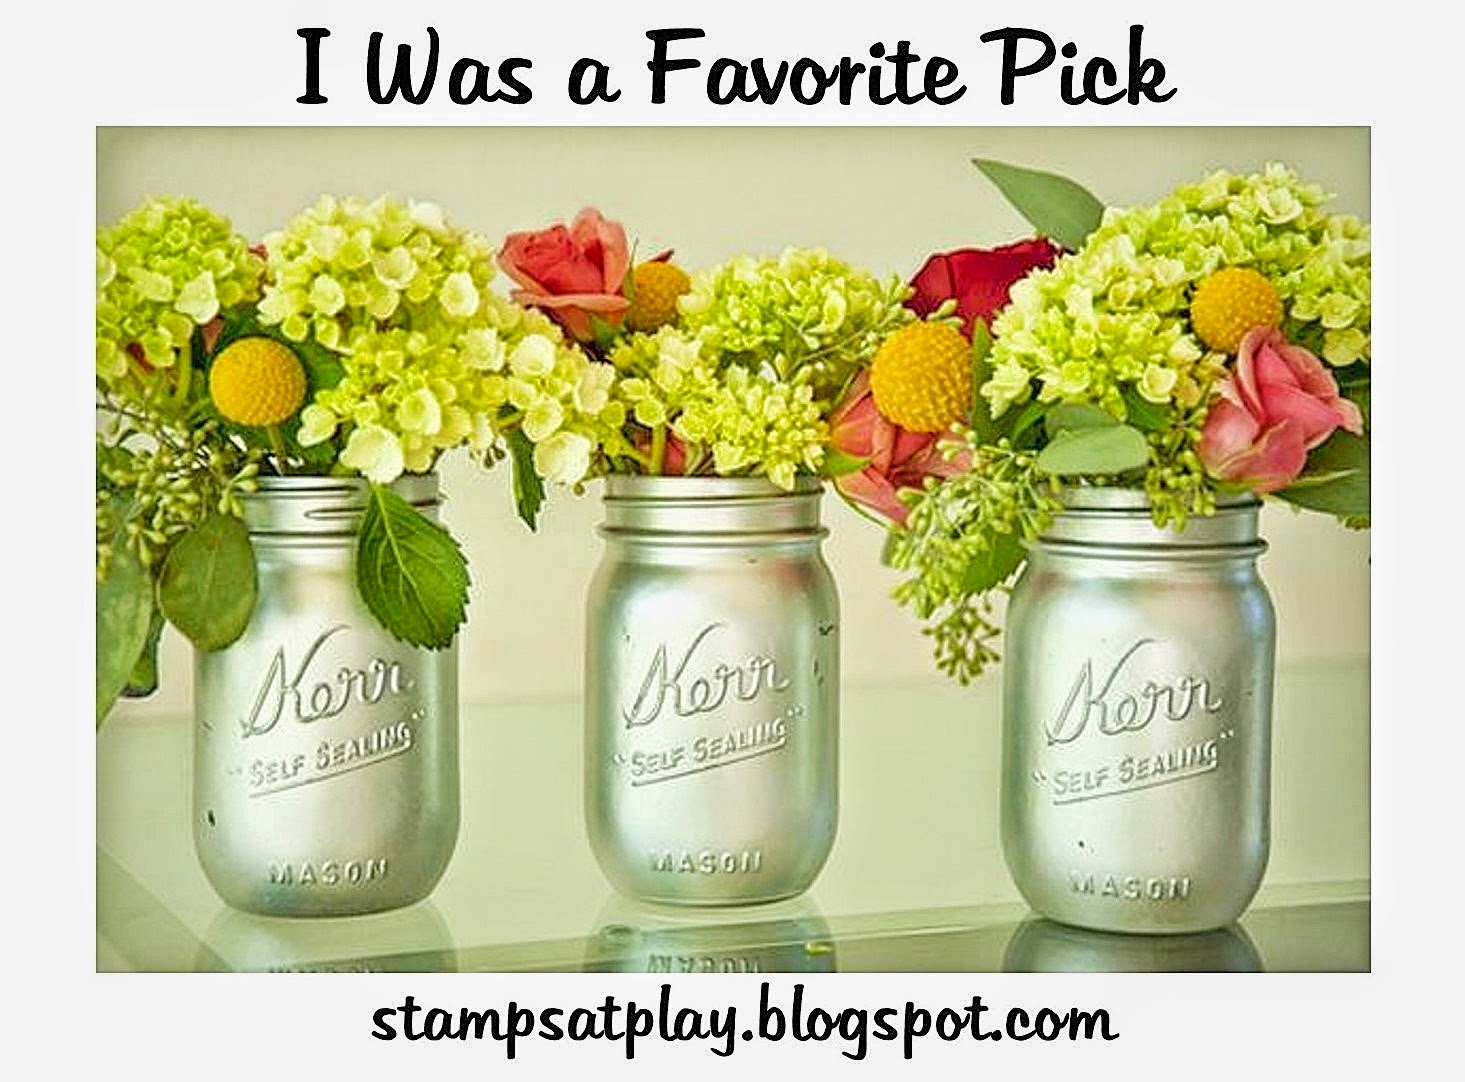 http://stampsatplay.blogspot.com/2015/04/favorite-picks_12.html